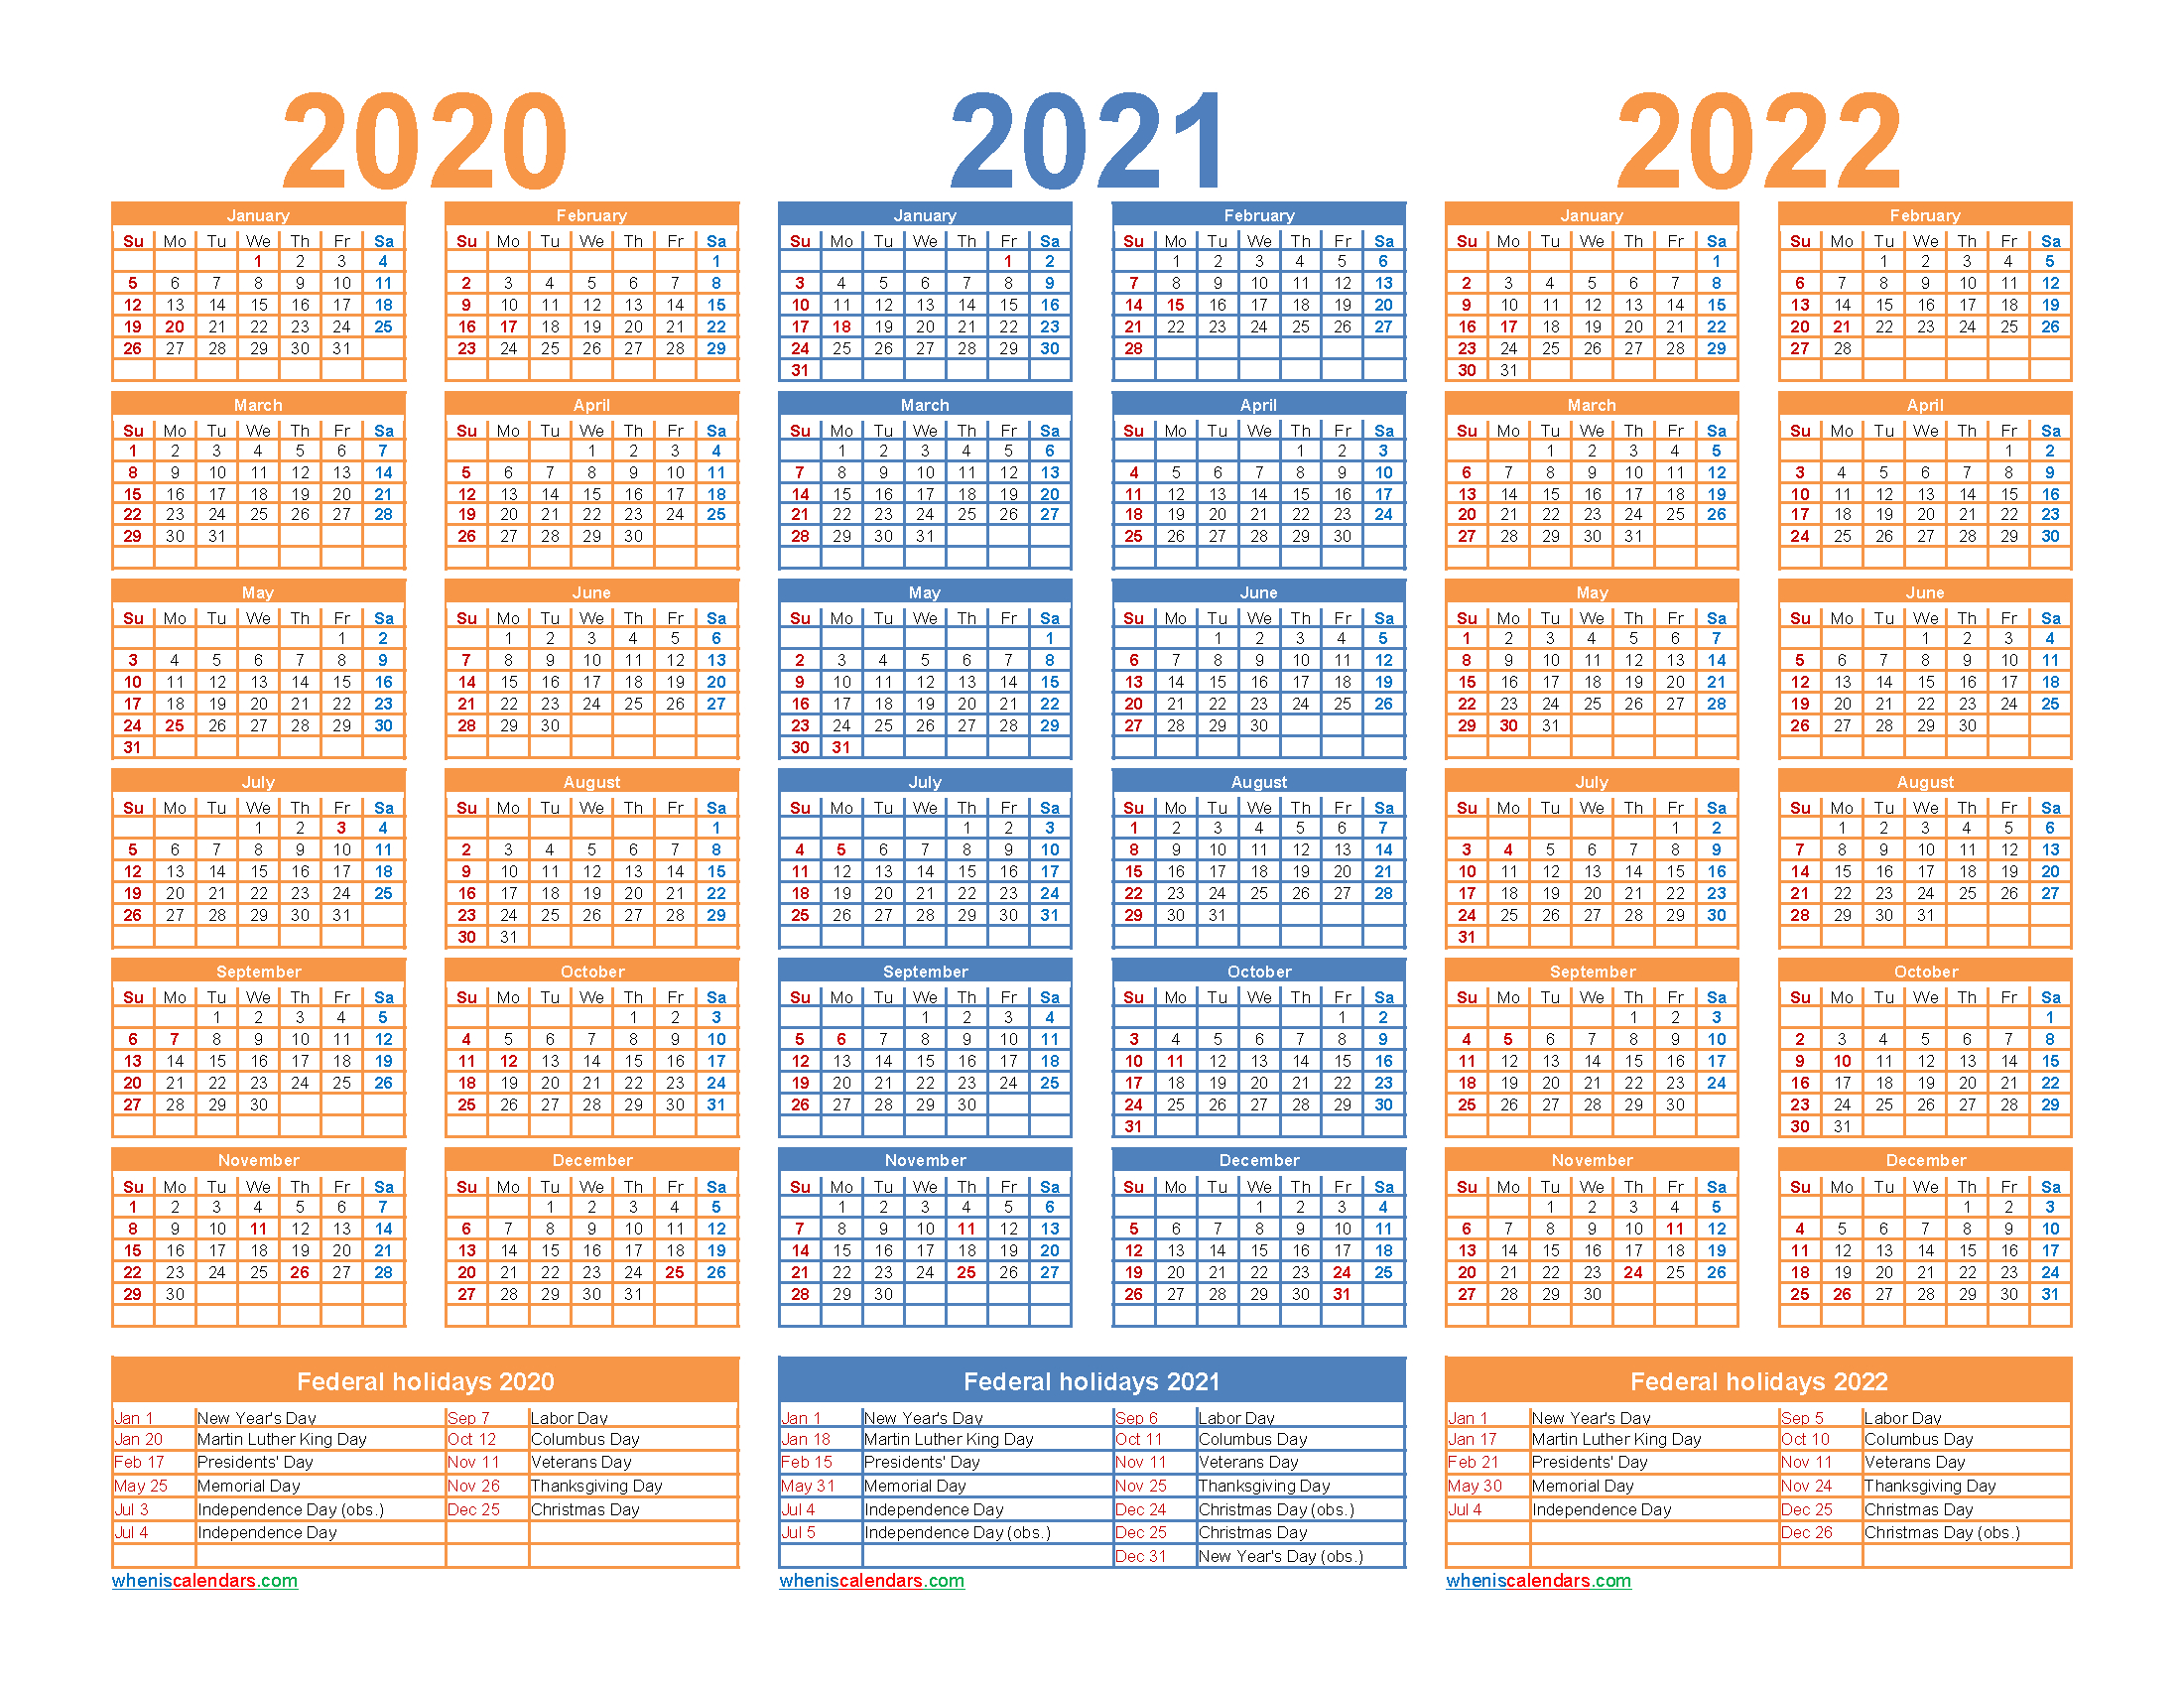 3 Year Calendar 2020 To 2022 Printable | Free Printable 2020 Printable Multi Year Calendars On One Page